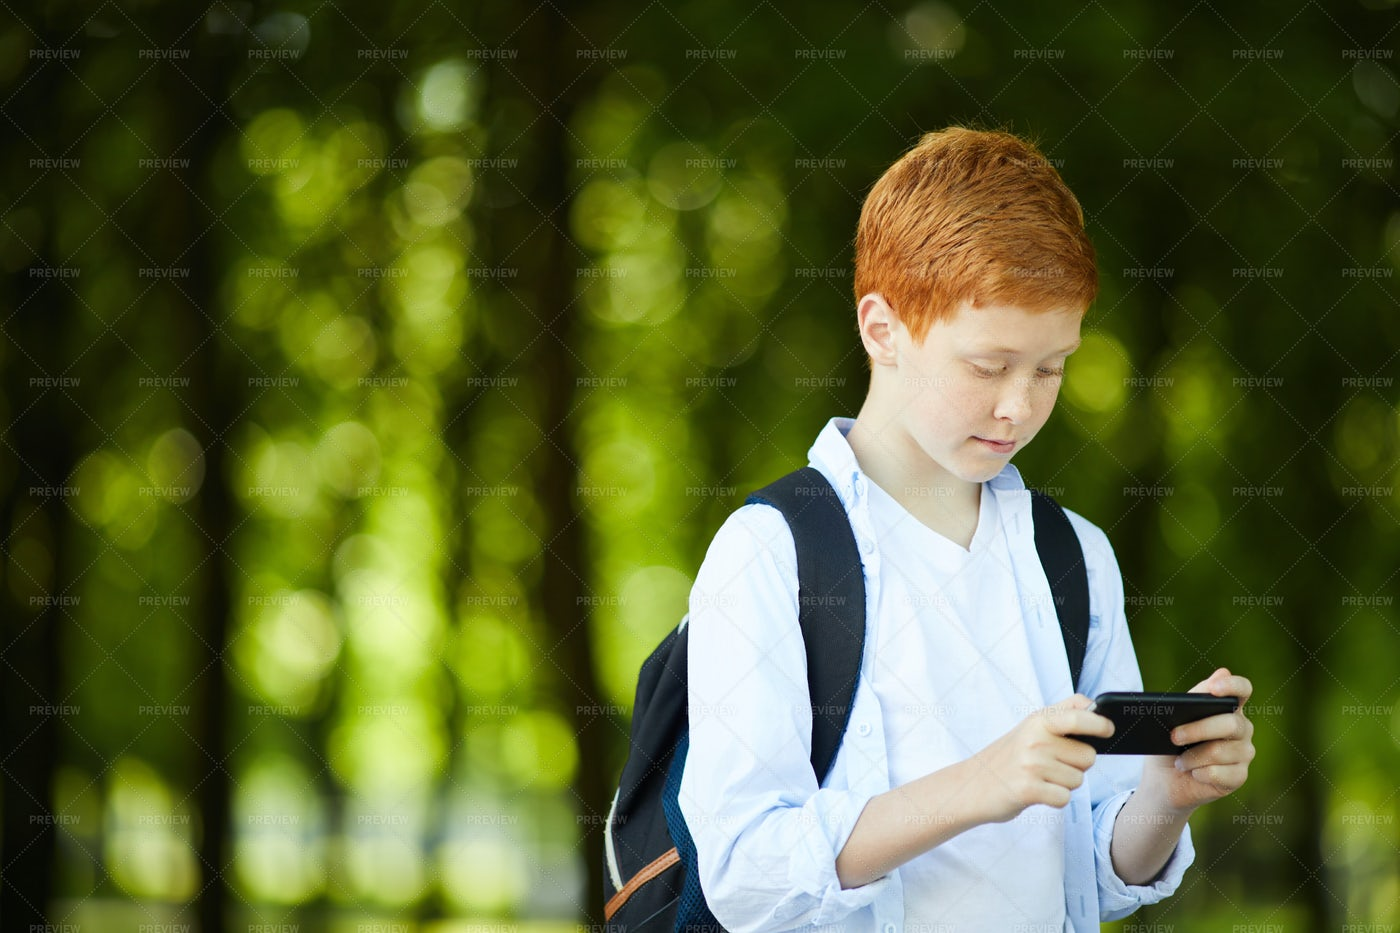 Schoolboy Playing With Phone: Stock Photos